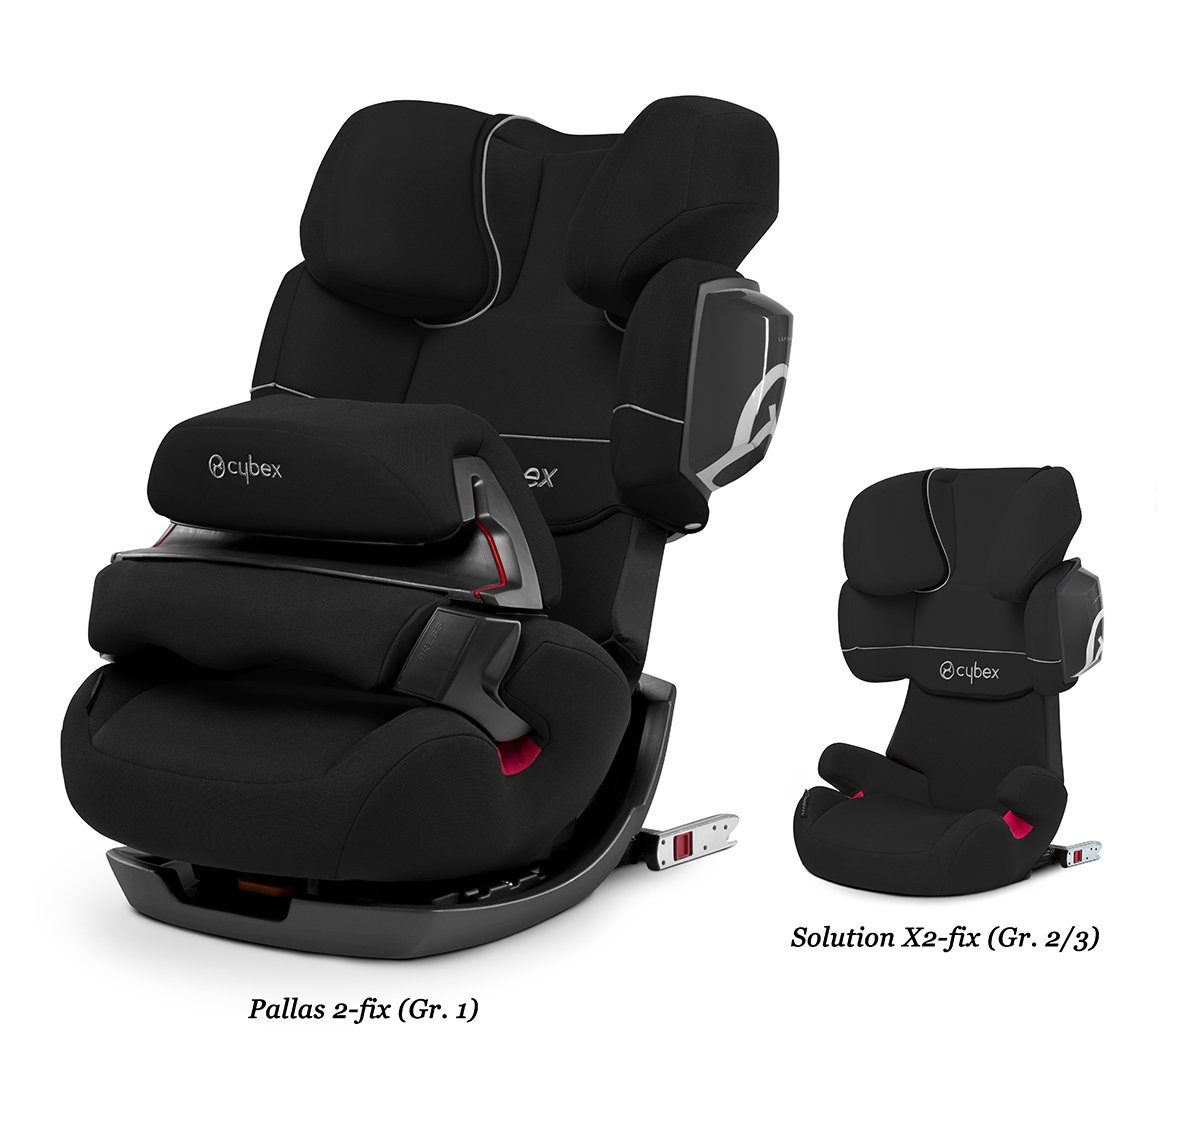 CYBEX Silver Pallas 2-Fix 2-in-1 Child's Car Seat, For Cars with and without ISOFIX, Group 1/2/3 (9-36 kg), From approx. 9 Months to approx. 12 Years, Pure Black  Adjustable safety cushion: More comfort and freedom of movement 2-in-1 seat: Can be used for up to 11 years 2